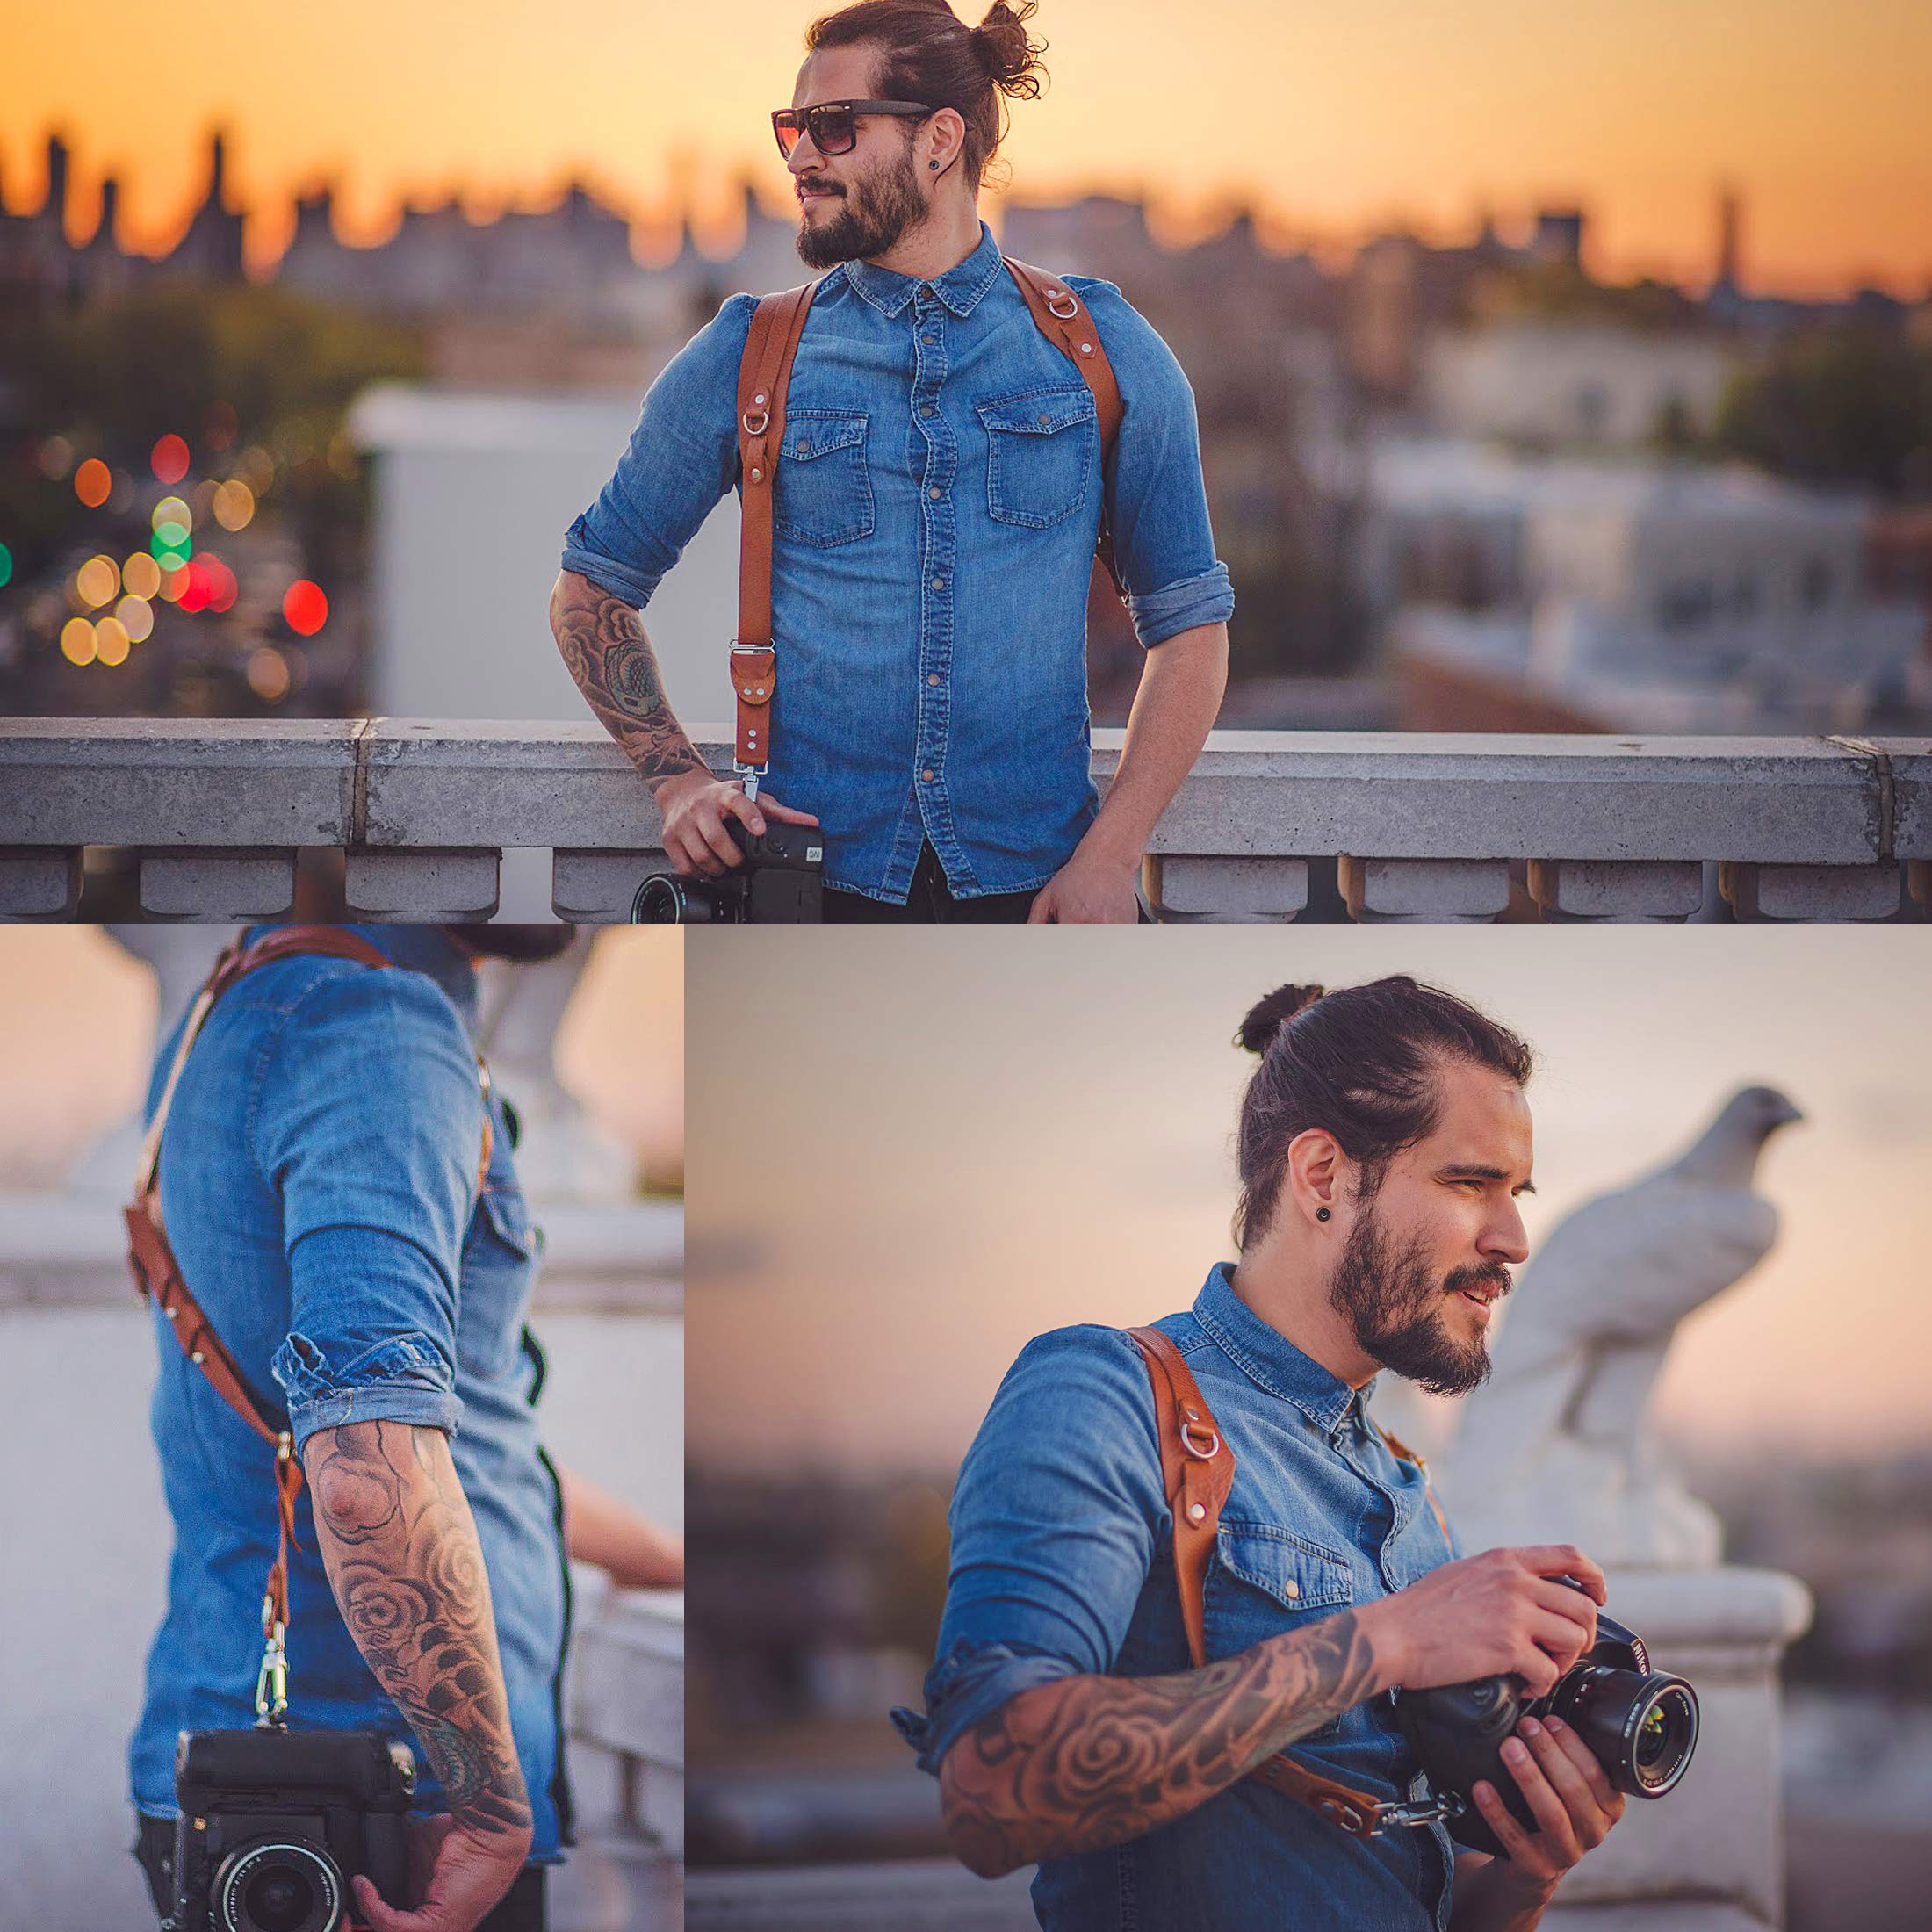 Clydesdale Pro-Dual Handmade Leather Camera Harness, Sling & Strap RL Handcrafts. DLSR, Mirrorless, Point & Shoot Made in The USA (Coffee, Small) by Republic Leather Company (Image #5)